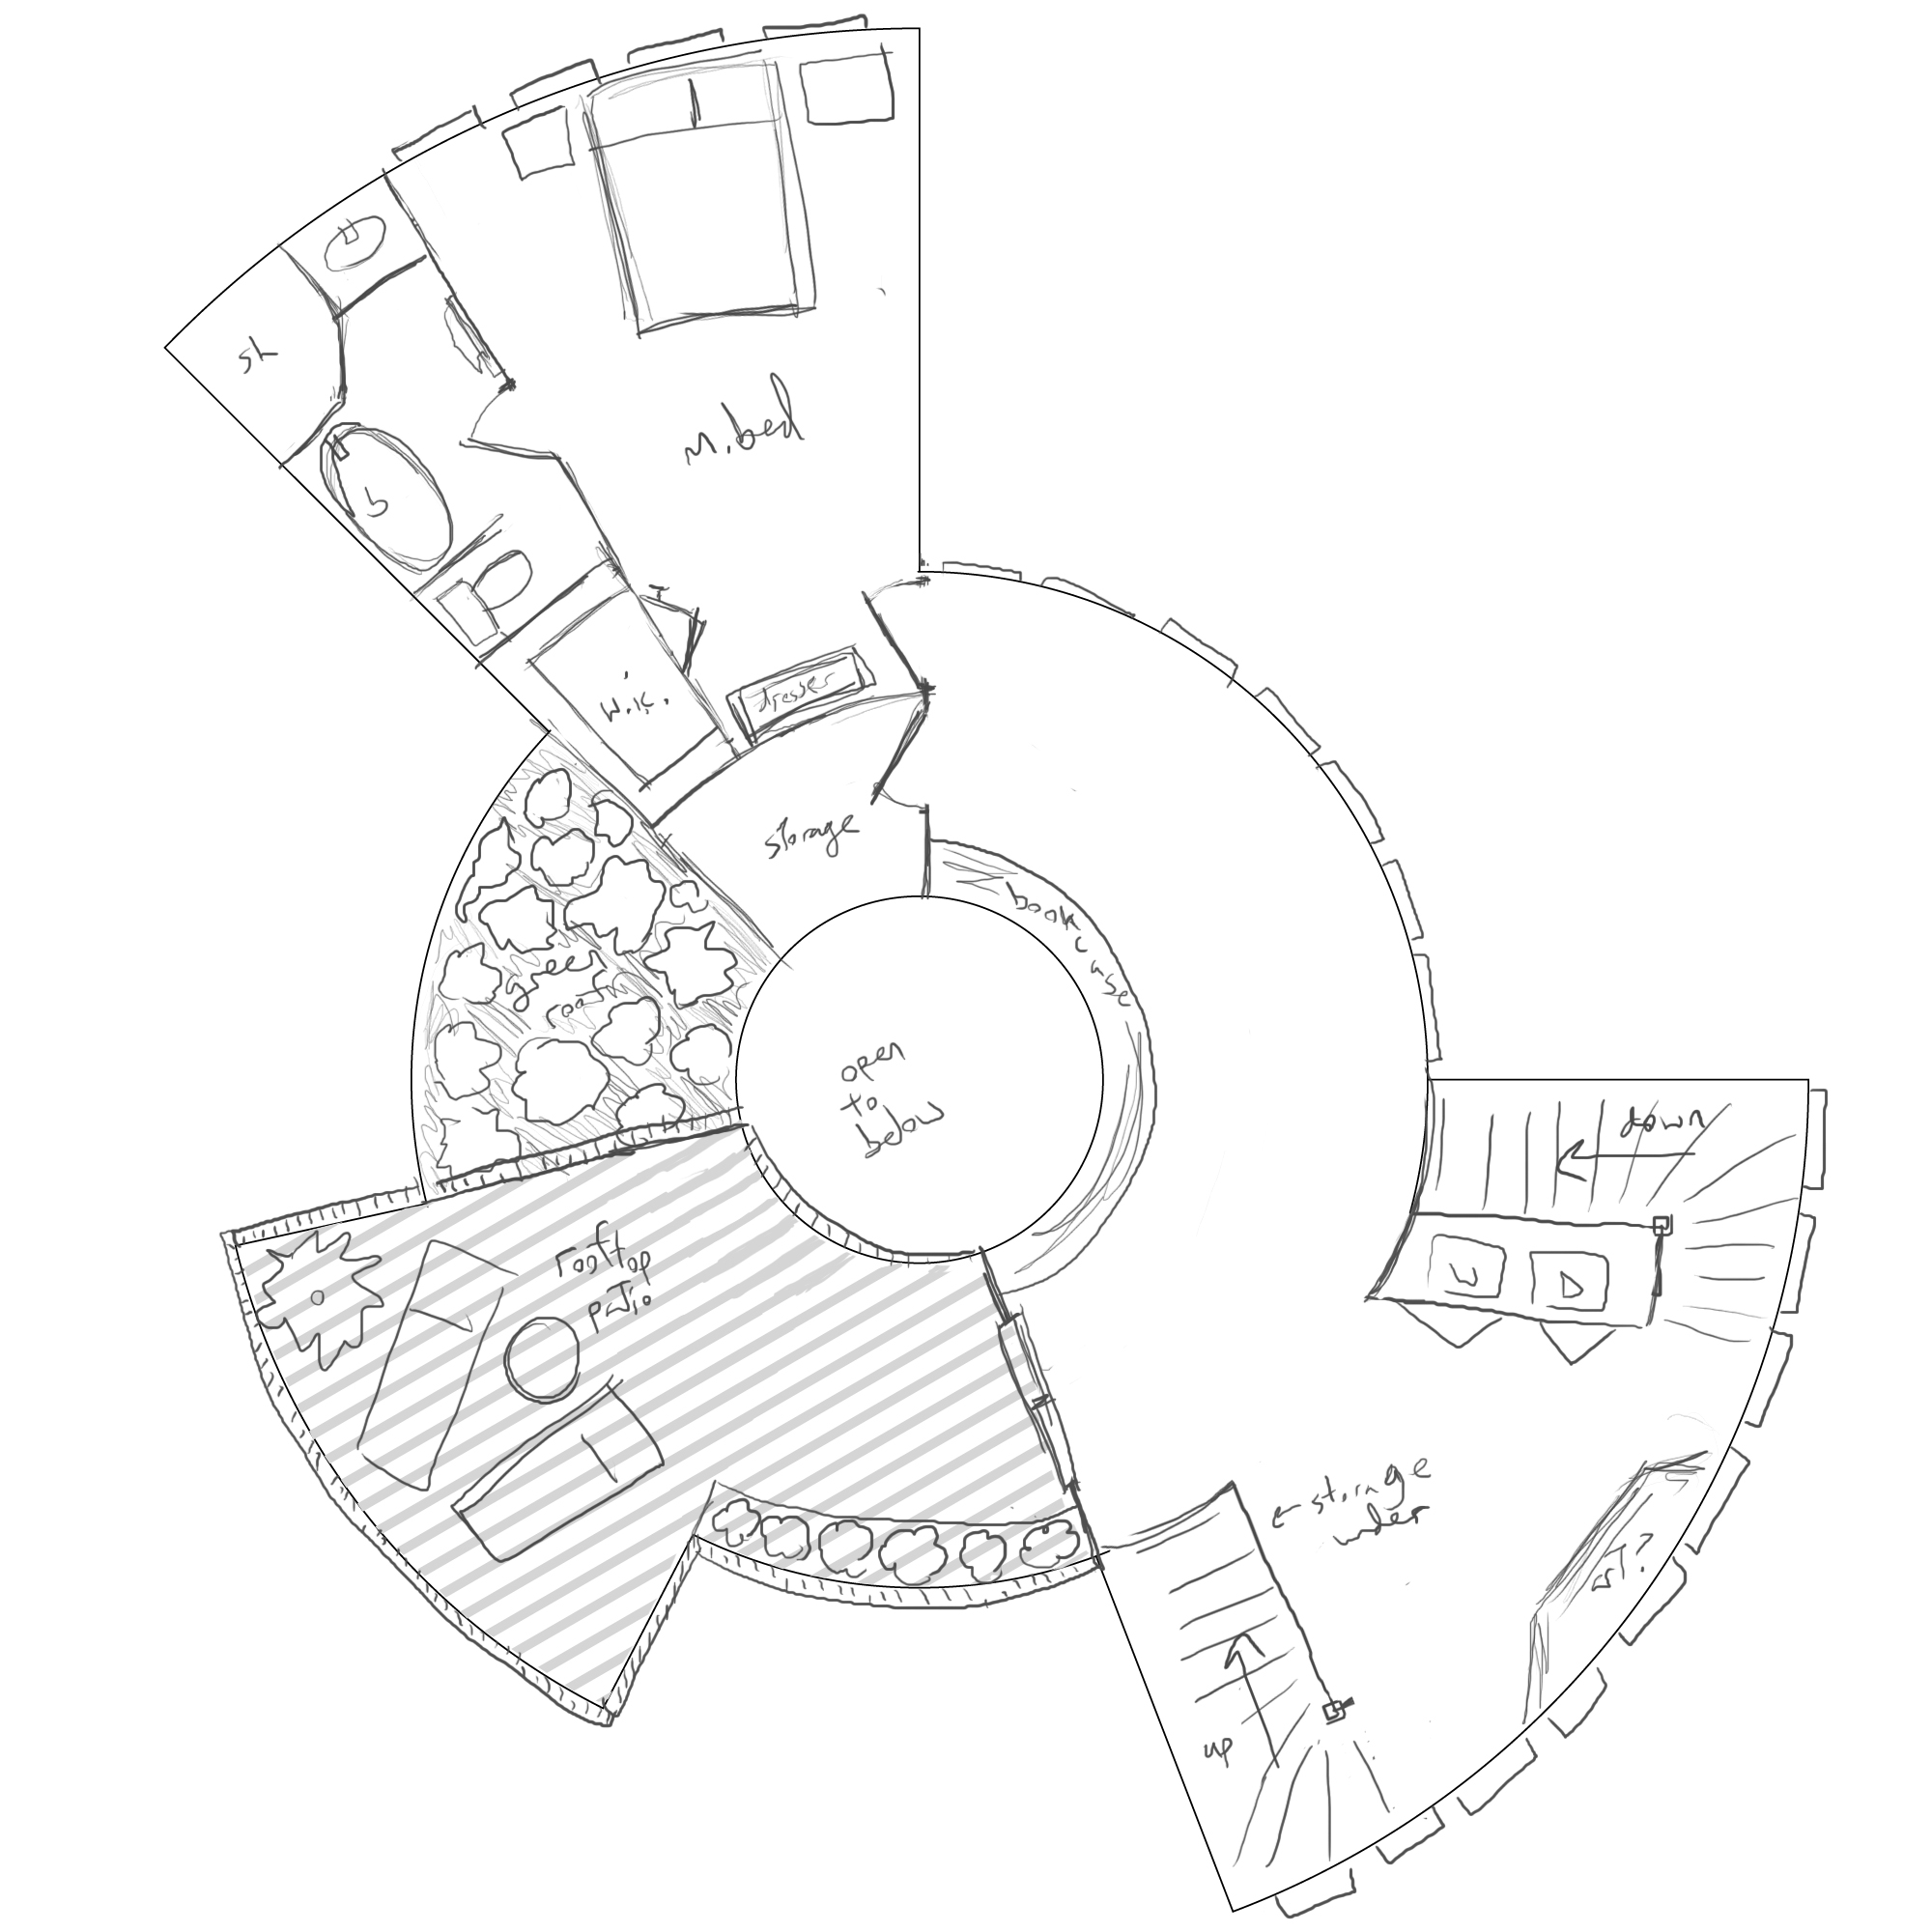 2000x2000 House Plans Circular Dl Spiral Staircase Home Tree Dual Semi Floor